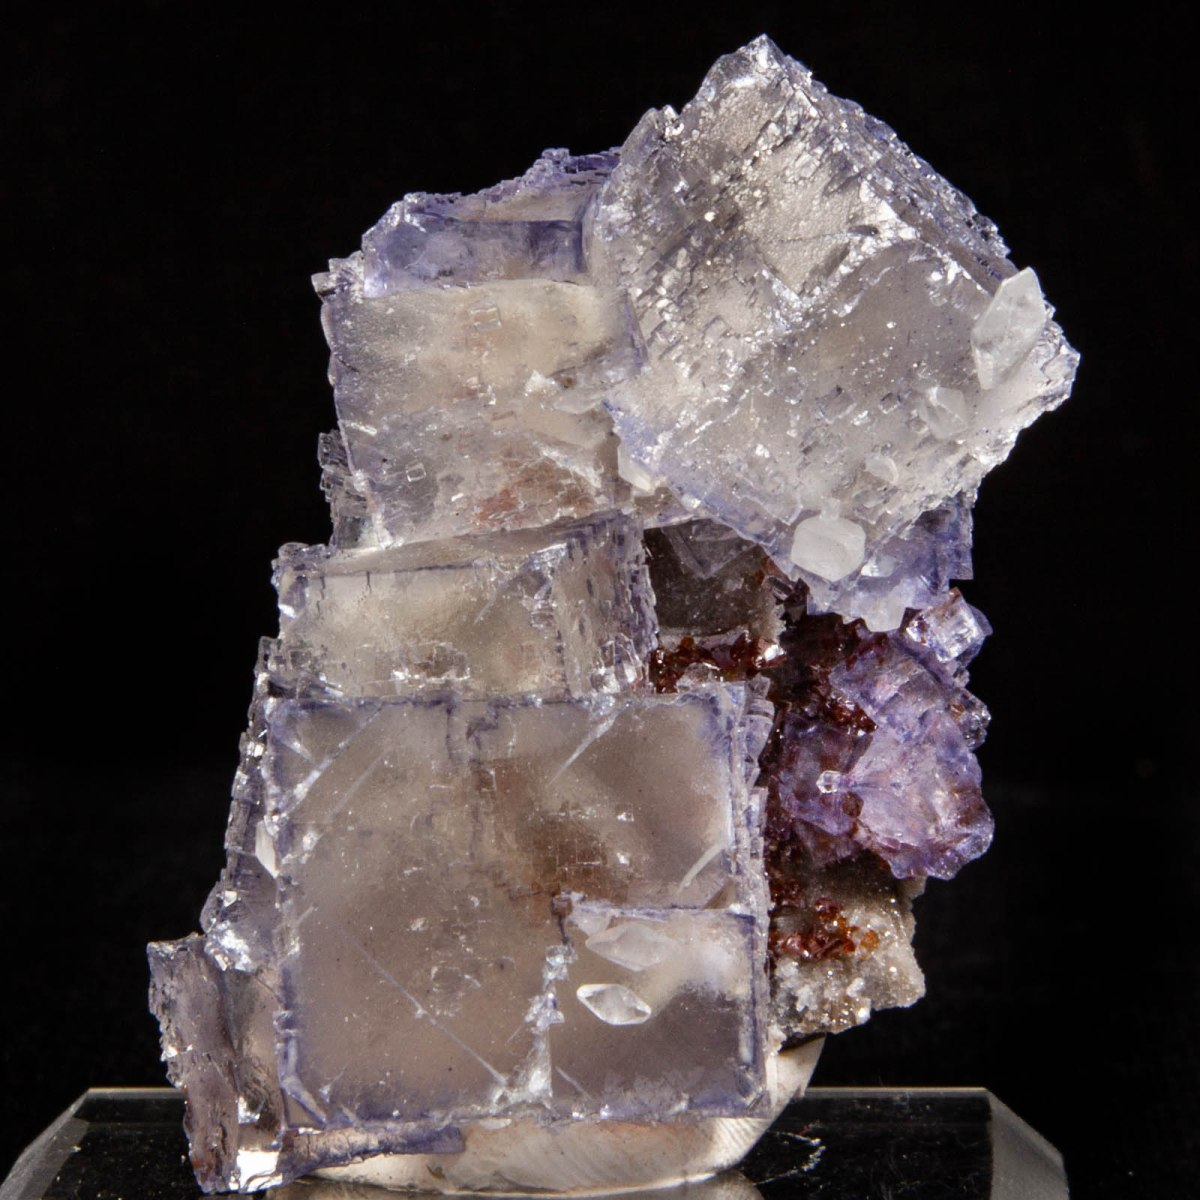 Fluorite and Calcite with Sphalerite